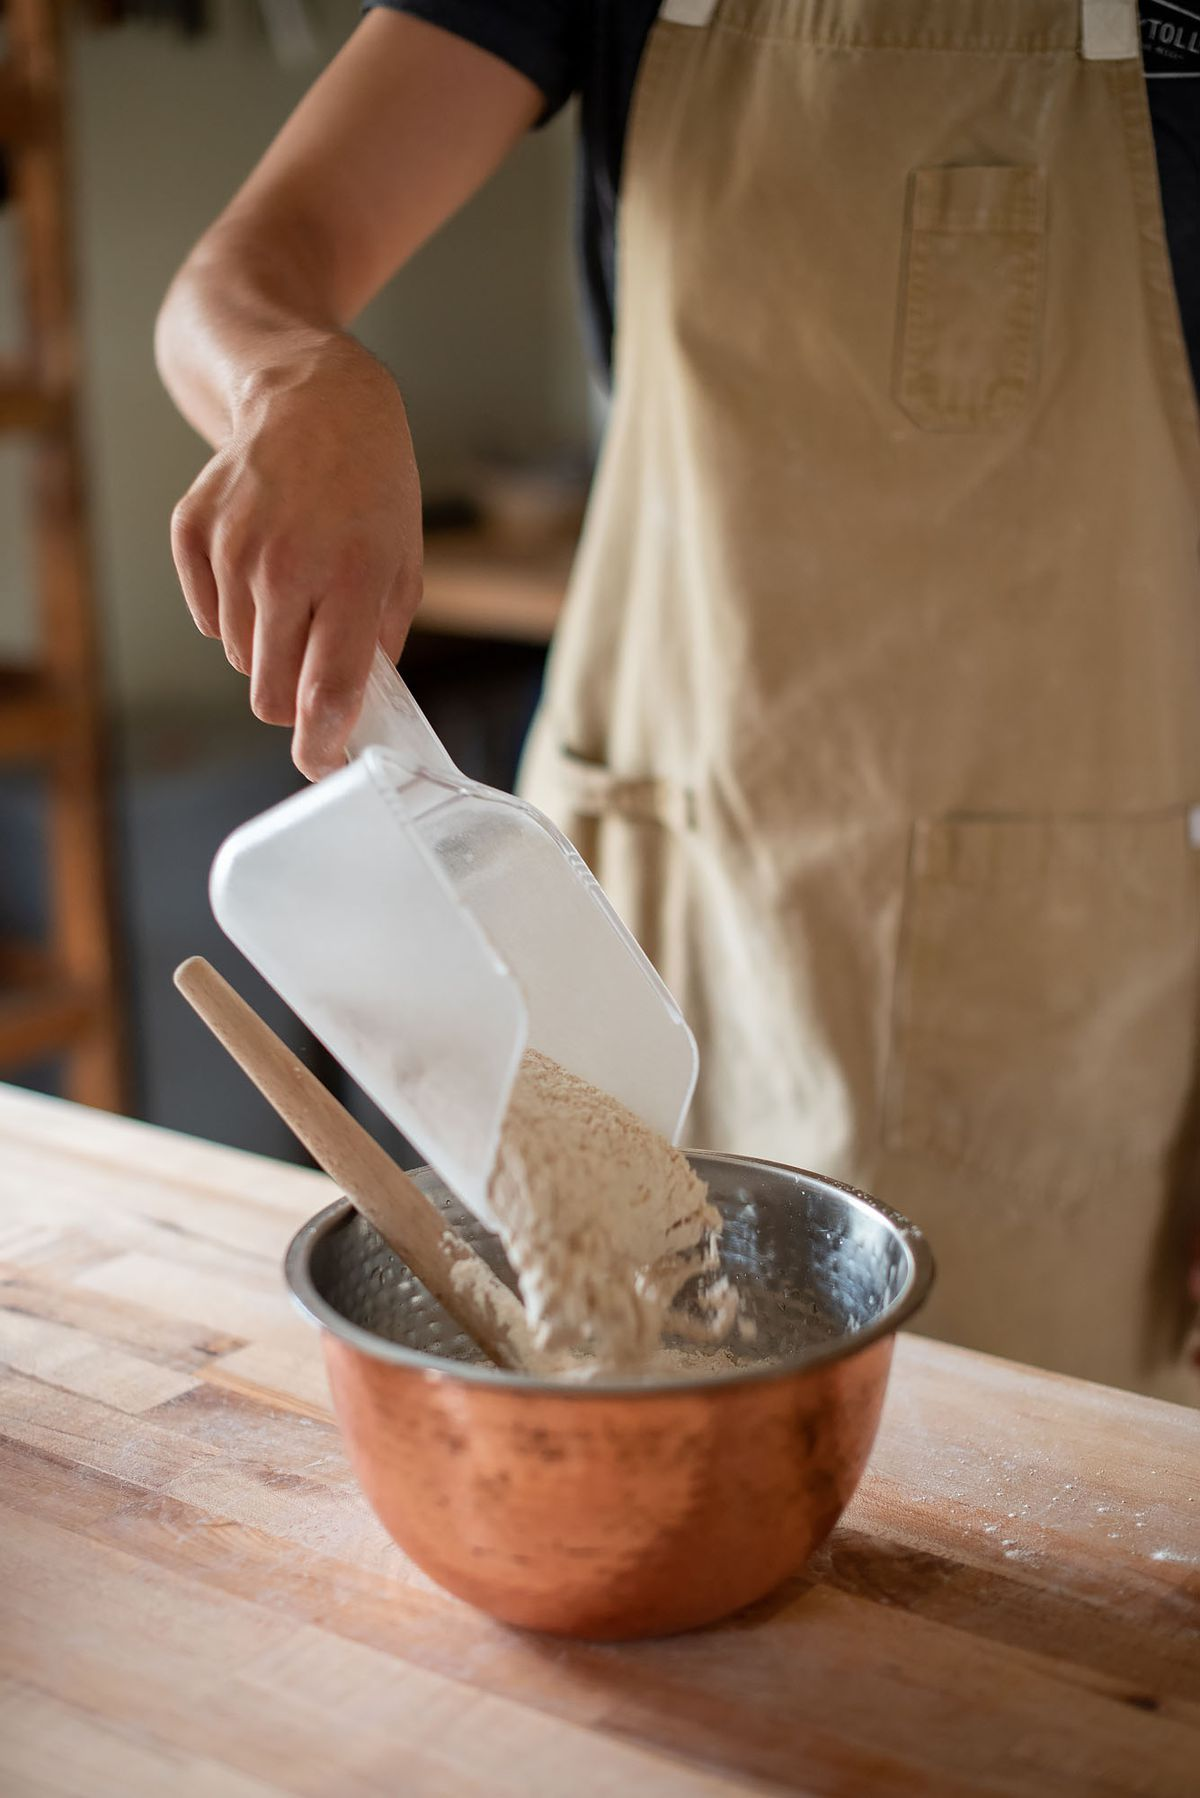 Readying flour at a home bakery, using a copper bowl.